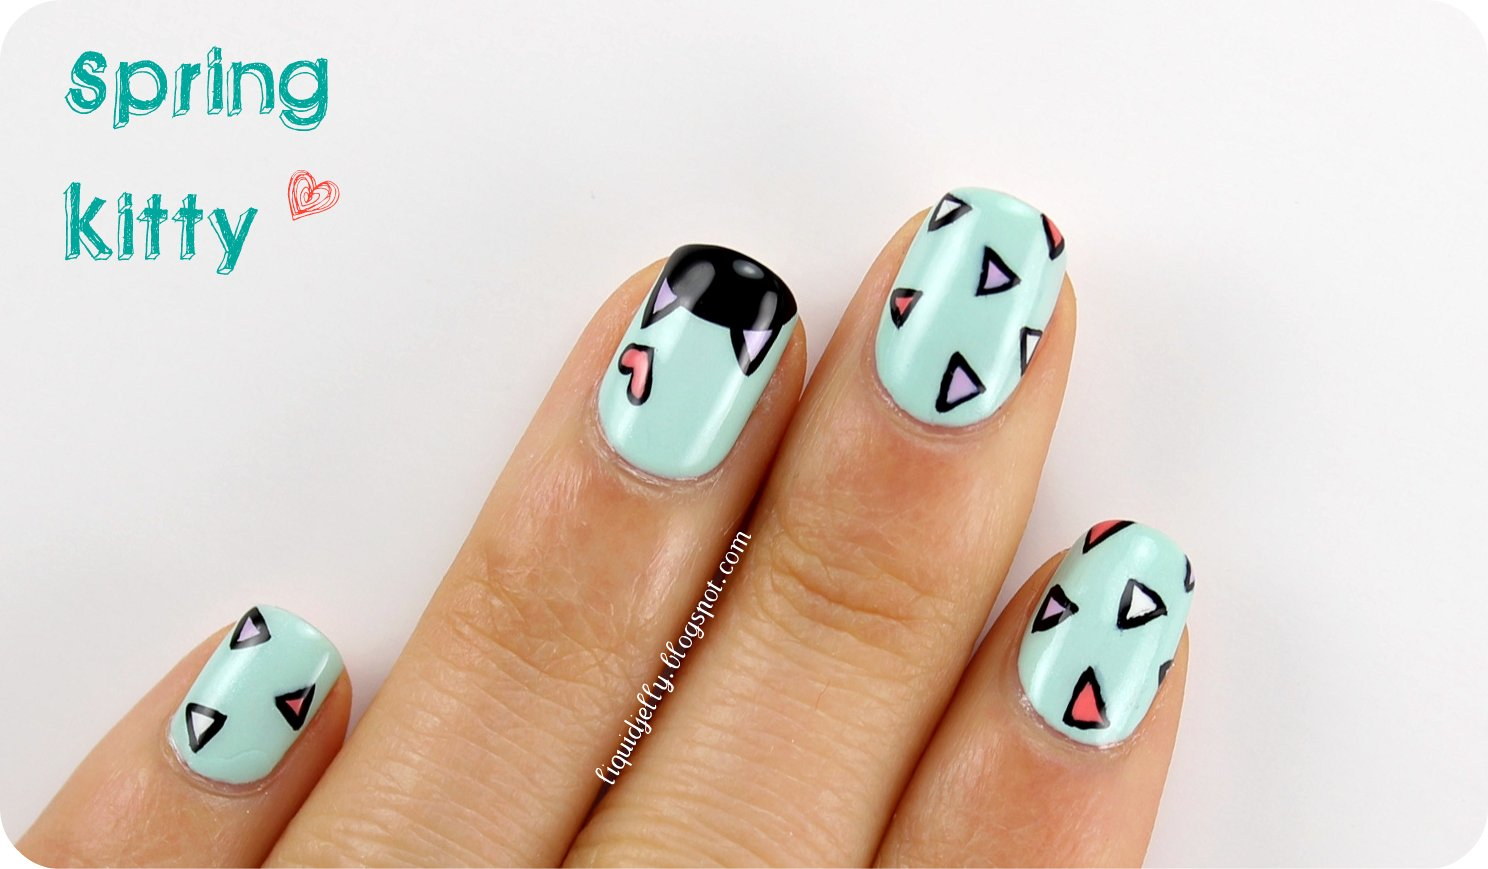 Liquid Jelly: Spring Kitty Nail Art